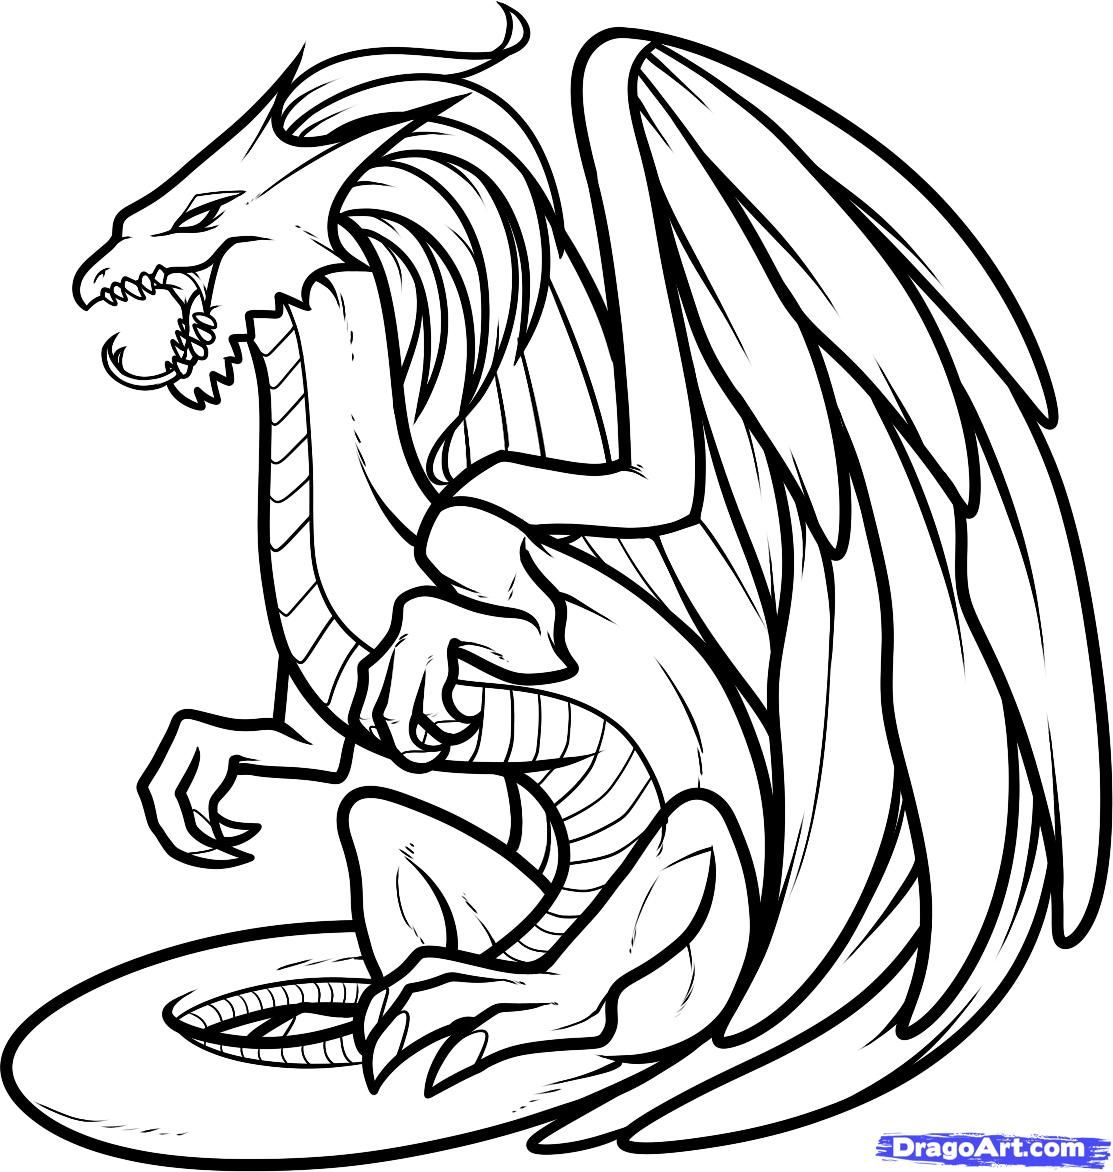 realistic dragon coloring pages pin on dragon coloring page pages dragon coloring realistic